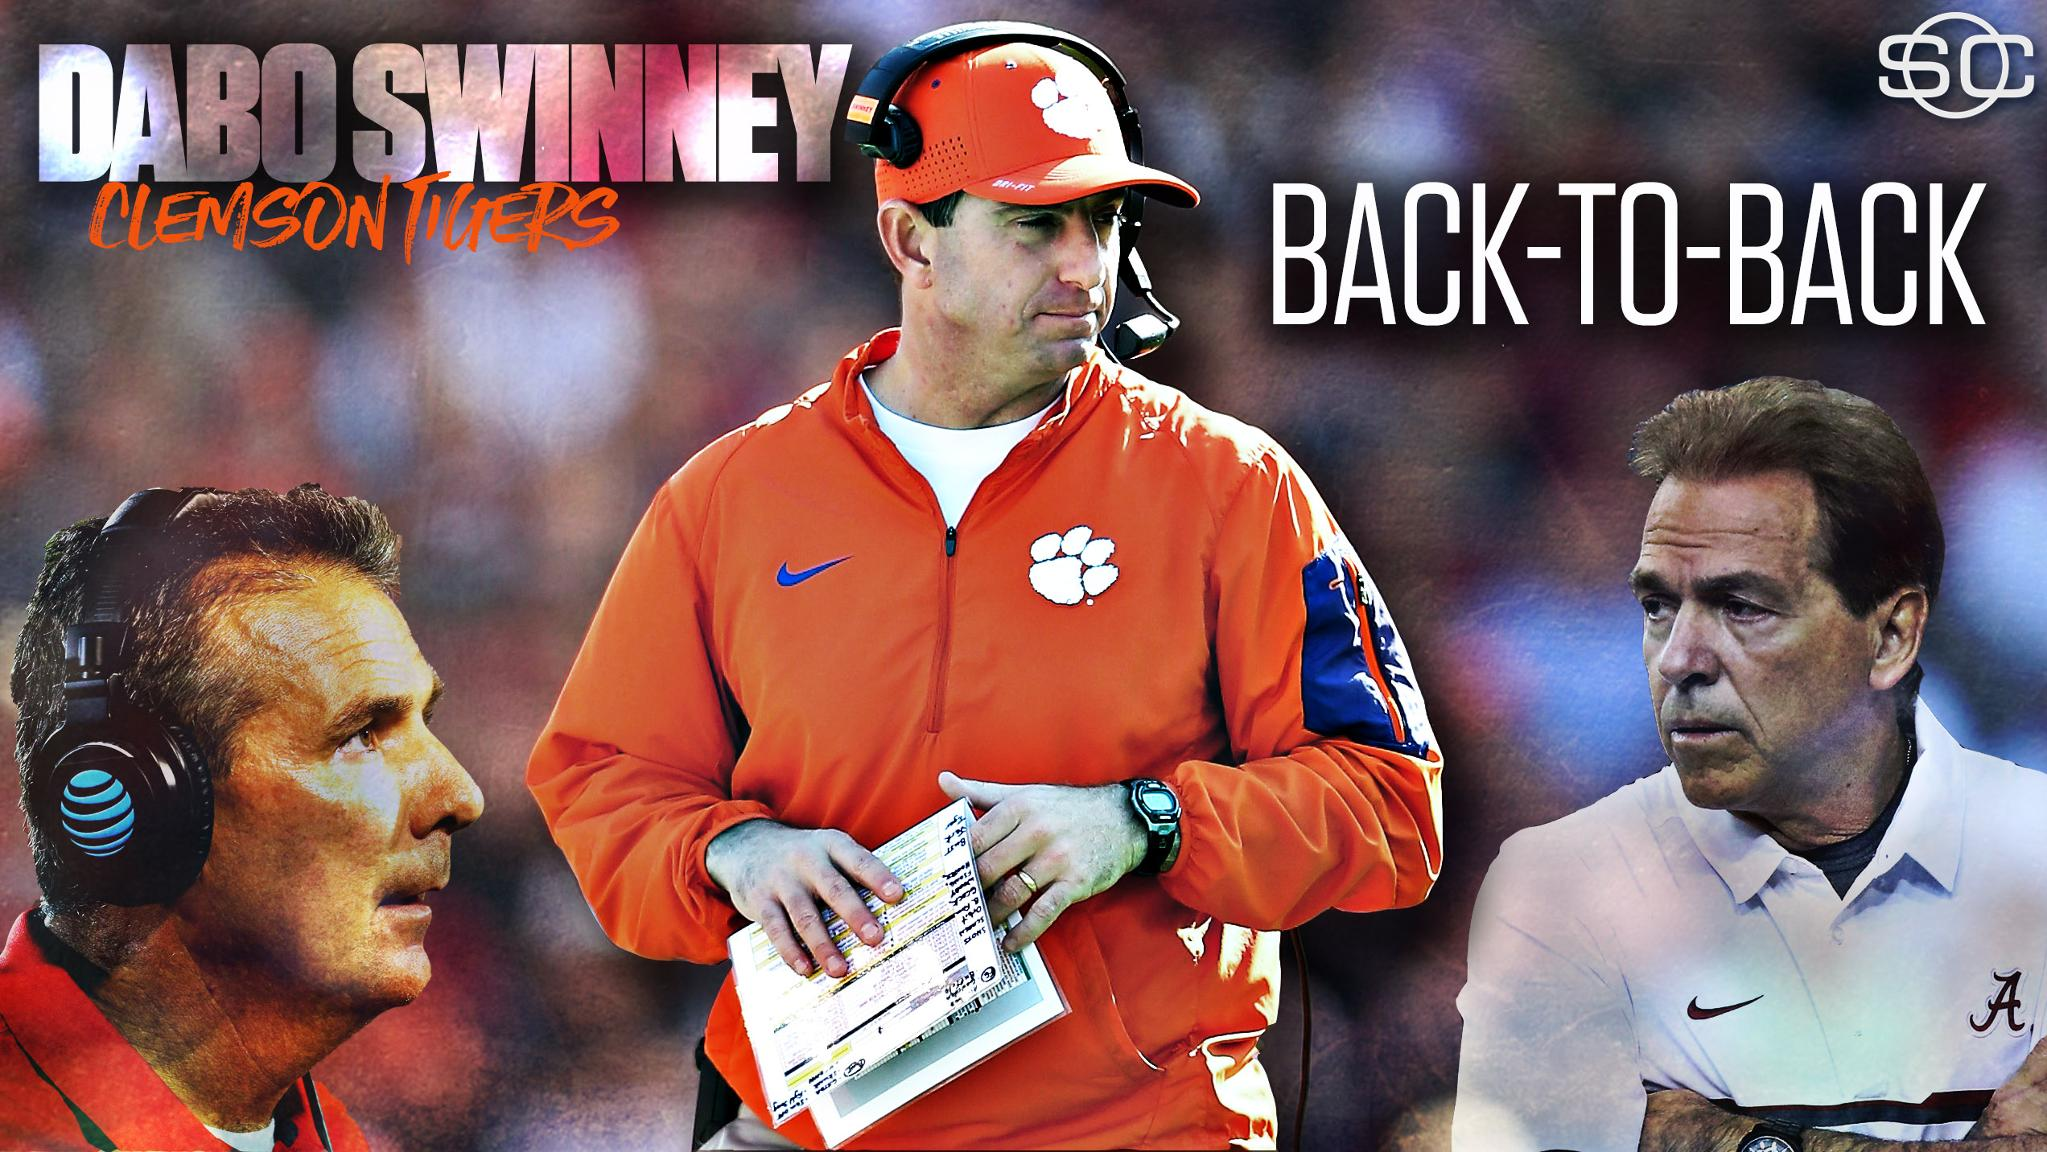 Impressive. Dabo Swinney beat Urban Meyer and Nick Saban back-to-back to help propel the Tigers to the title. https://t.co/PPtx9Cvfhz